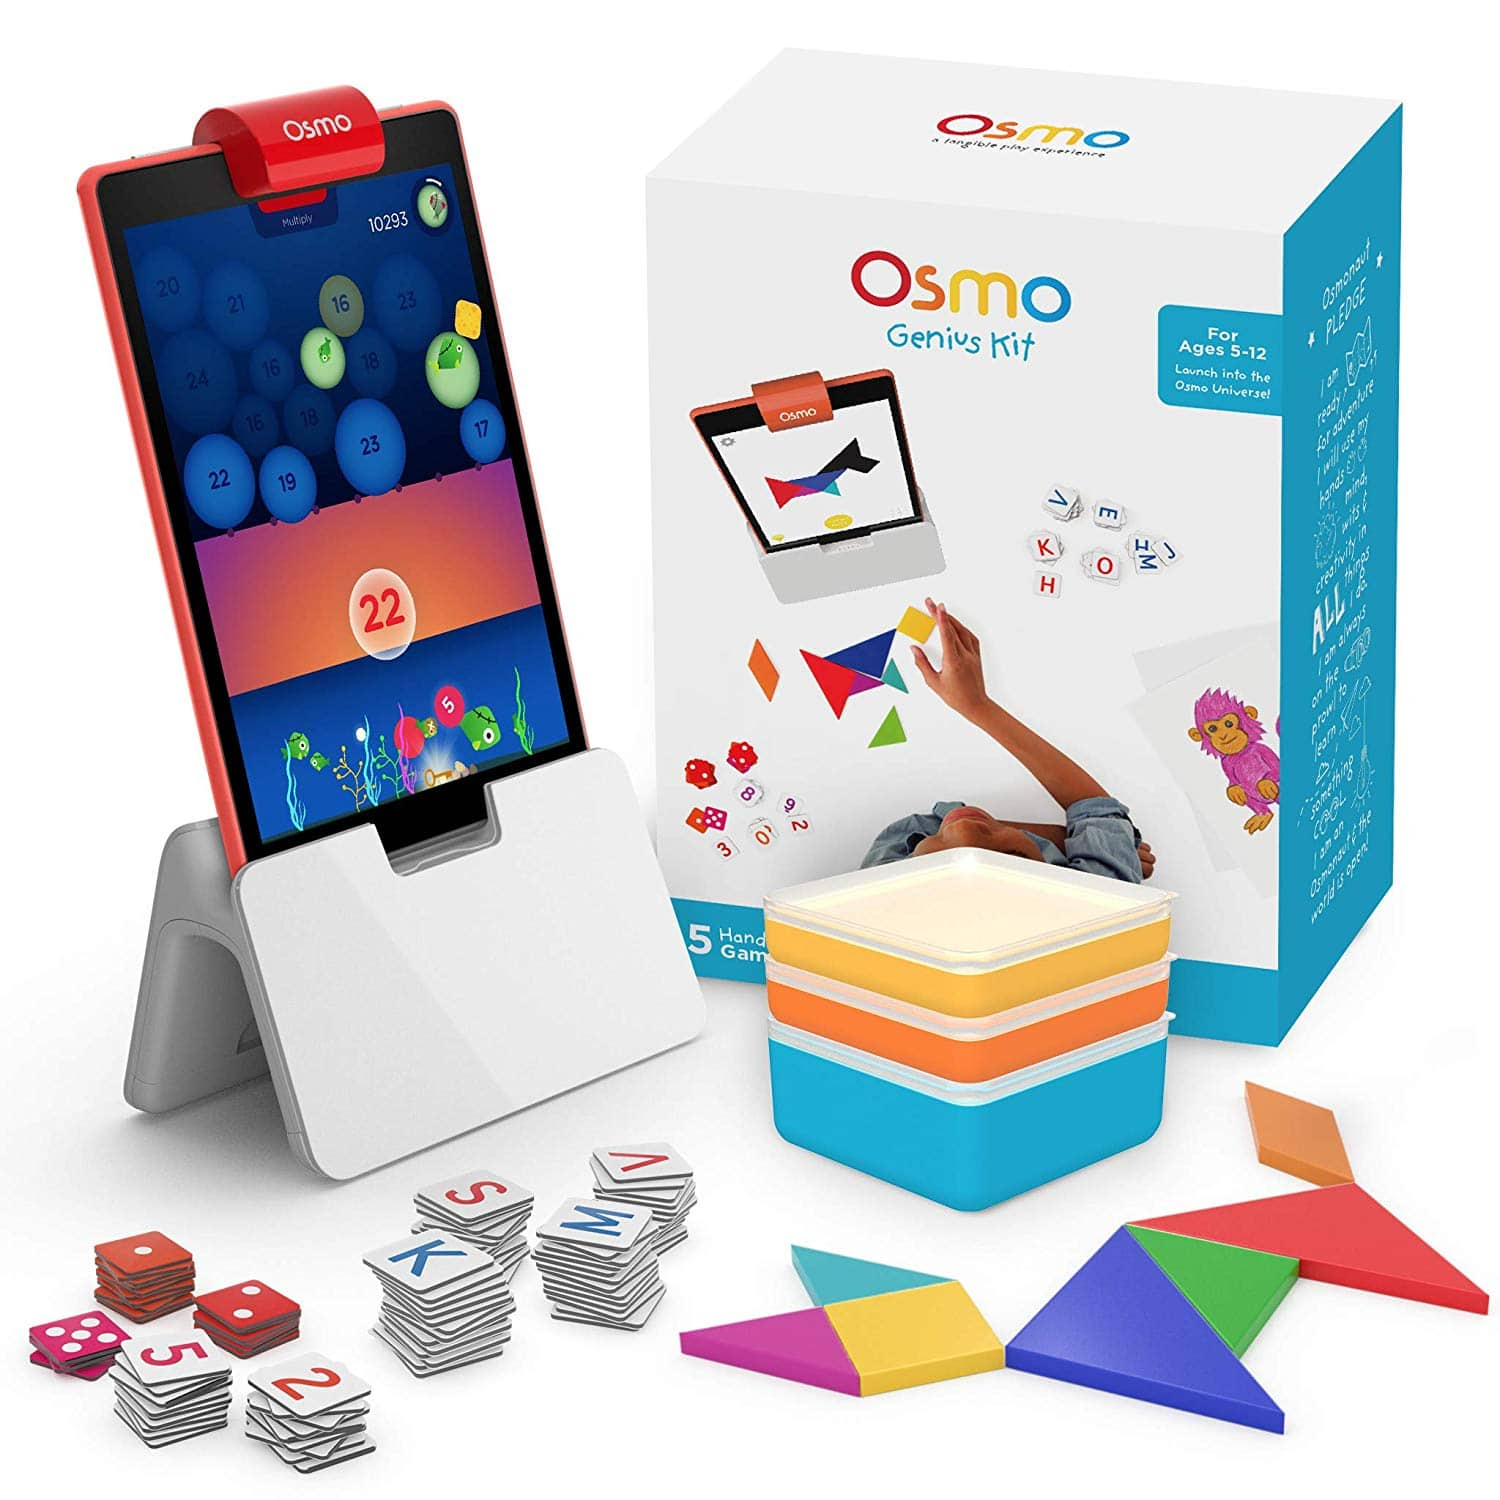 Osmo Genius Kit for Fire Tablet (Amazon Exclusive) $69.99